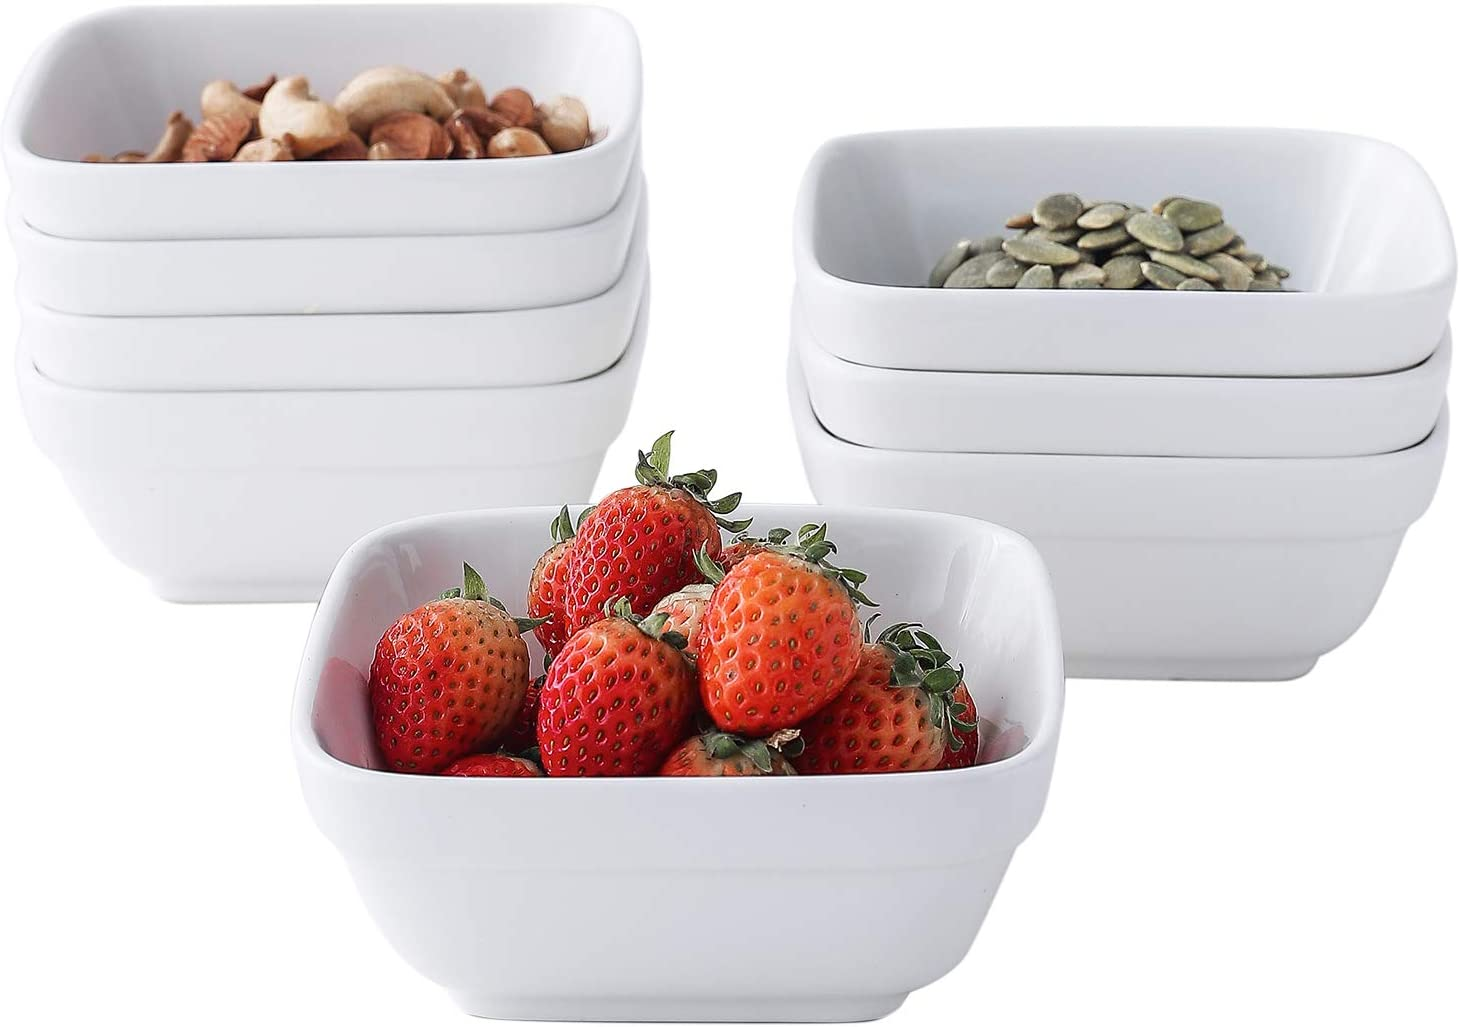 10 Ounces Porcelain Square Bowl Set - Ceramic Dessert Bowls,4.5 Inch White Ramekins for Creme Brulee and Souffle-Small Bowls for Dipping,Ice Cream,Fruit - Set of 8 - Dishwasher Microwave Safe